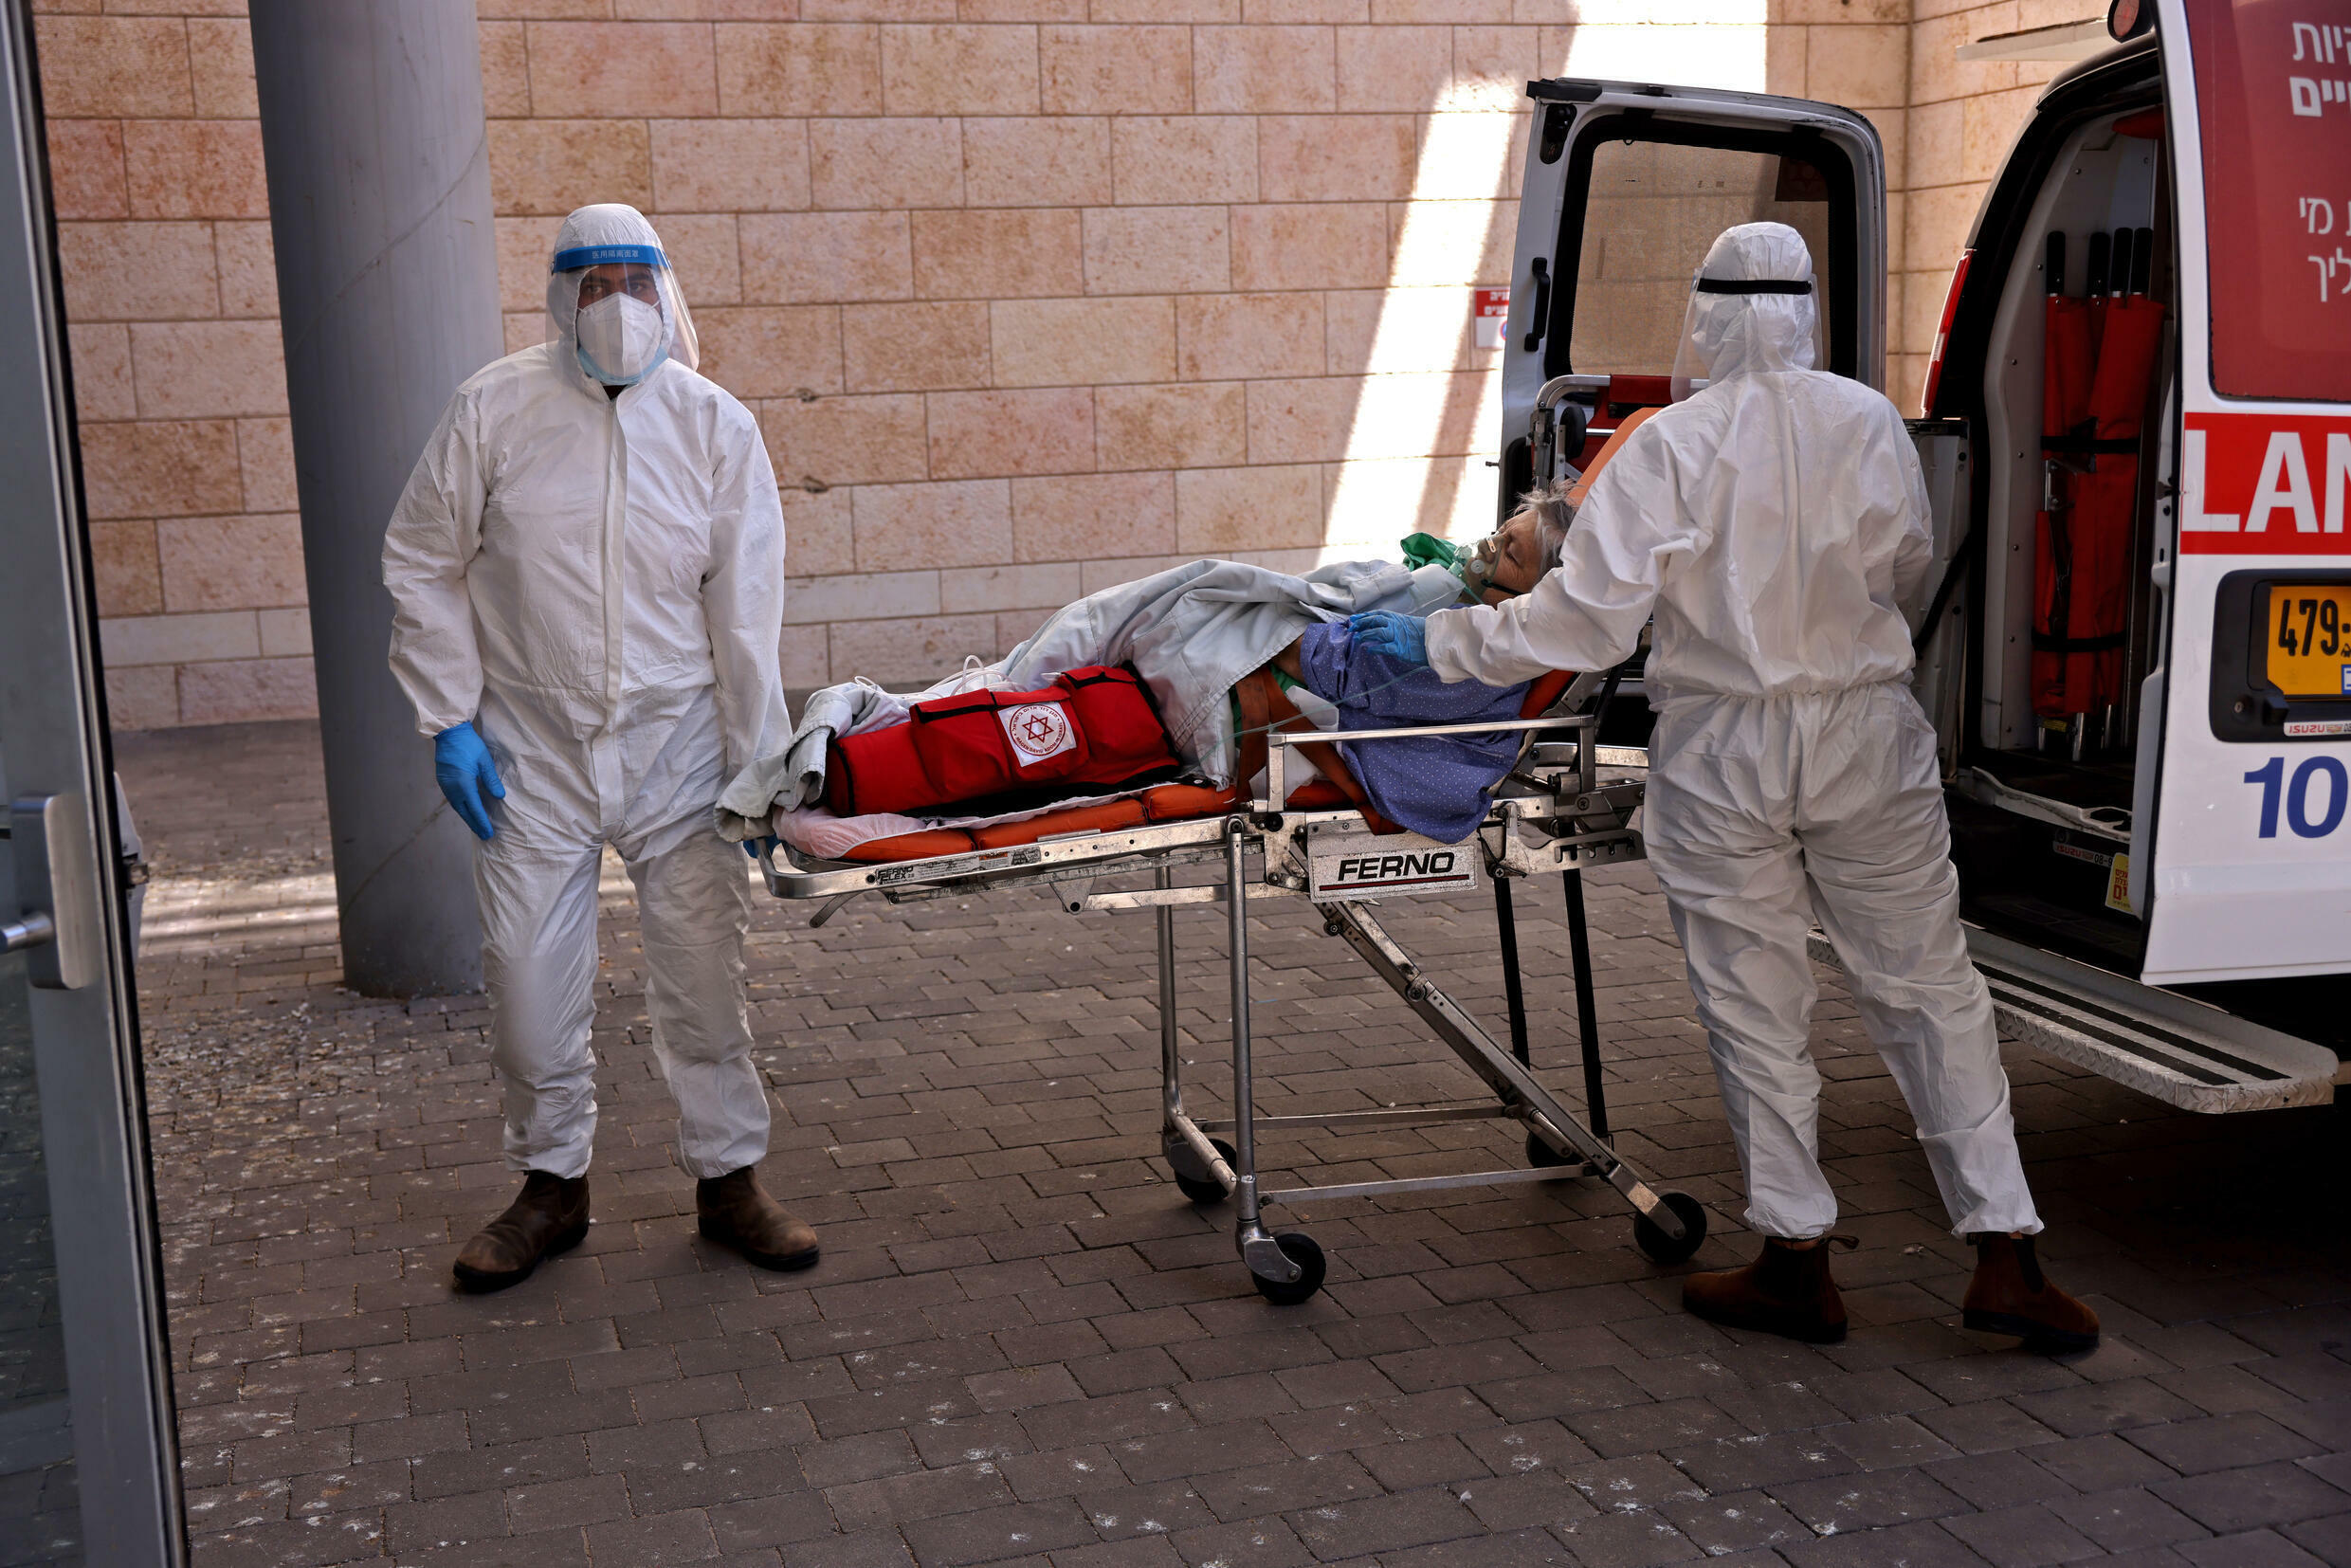 Growing numbers of Israeli hospitals have reached full capacity following a surge in Covid infections, forcing medics to transfer this patient to Jerusalem's Hadassah Ein Kerem Hospital earlier this week